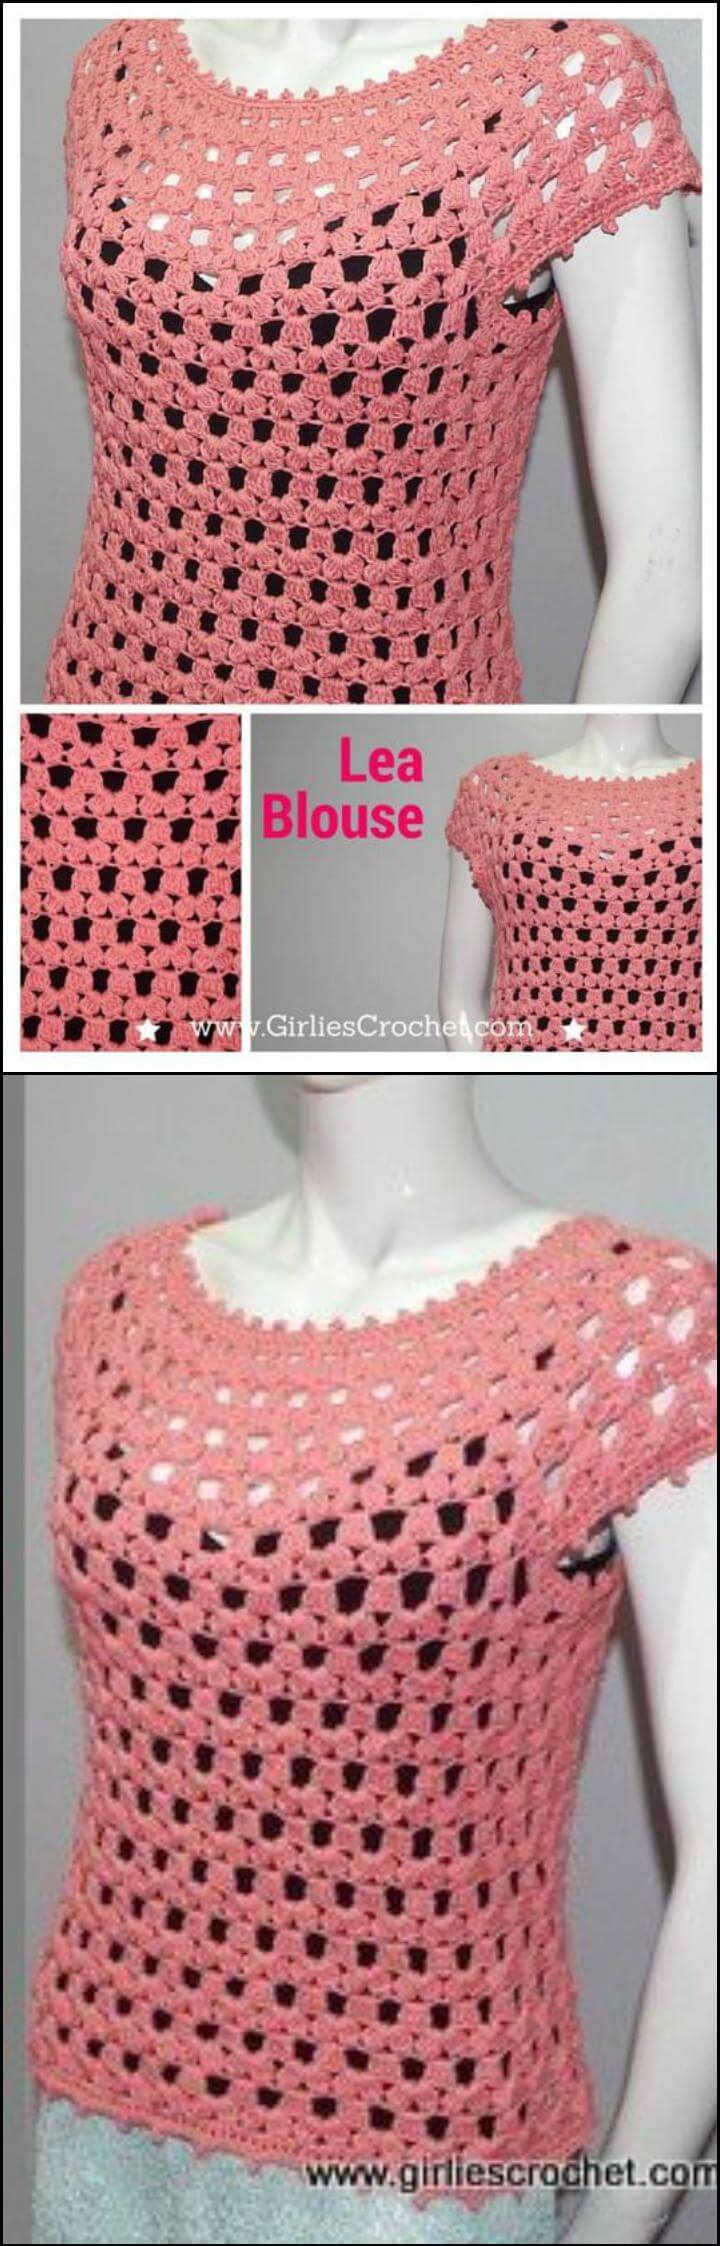 50+ Quick & Easy Crochet Summer Tops - Free Patterns ...